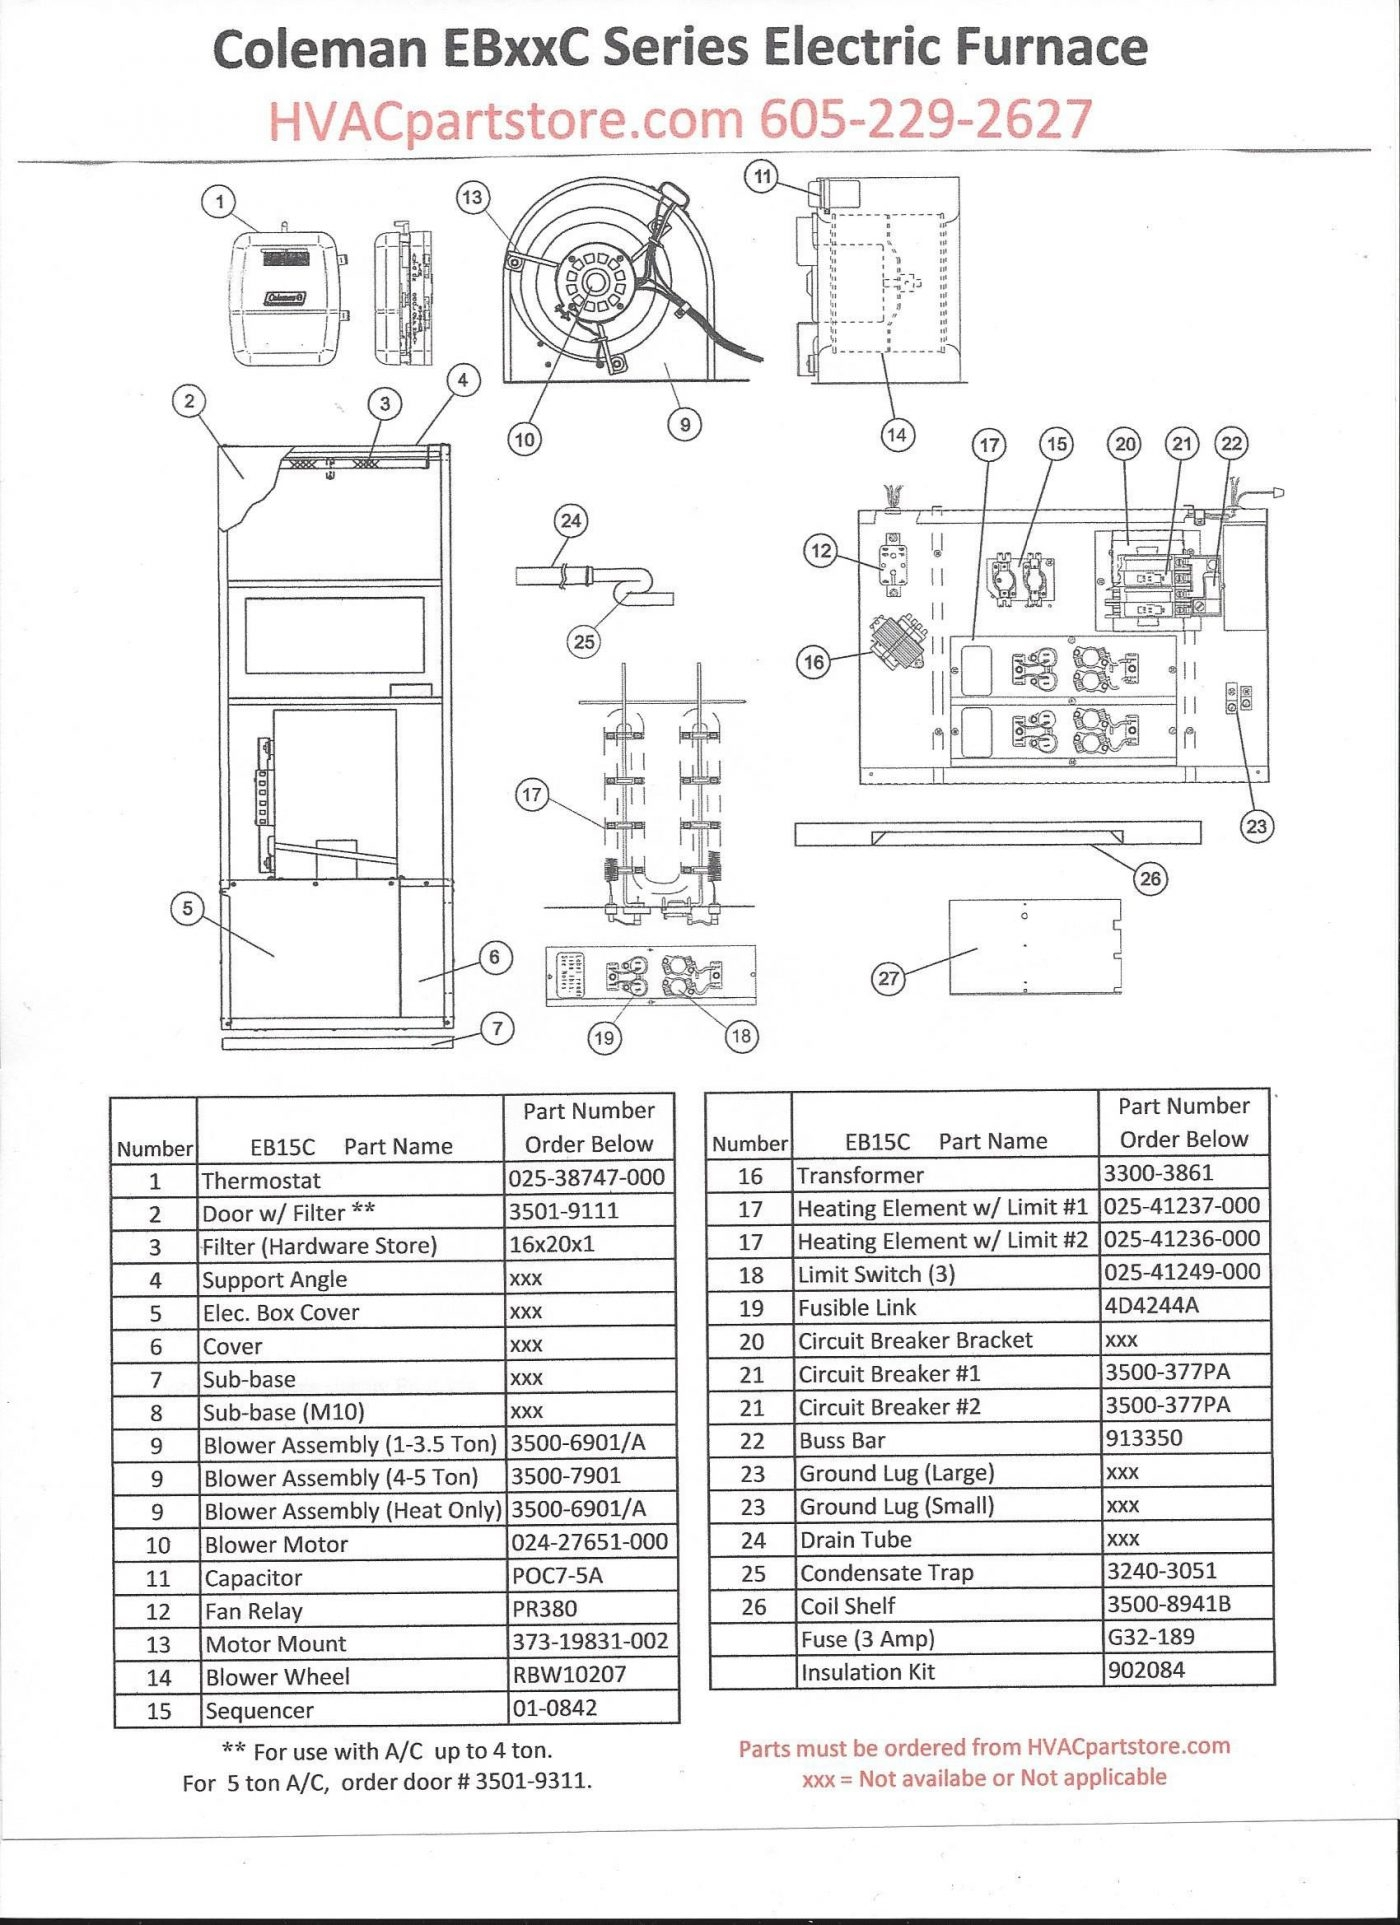 1987 chevy truck fuel pump wiring diagram free picture tempstar heat pump wiring diagram | free wiring diagram